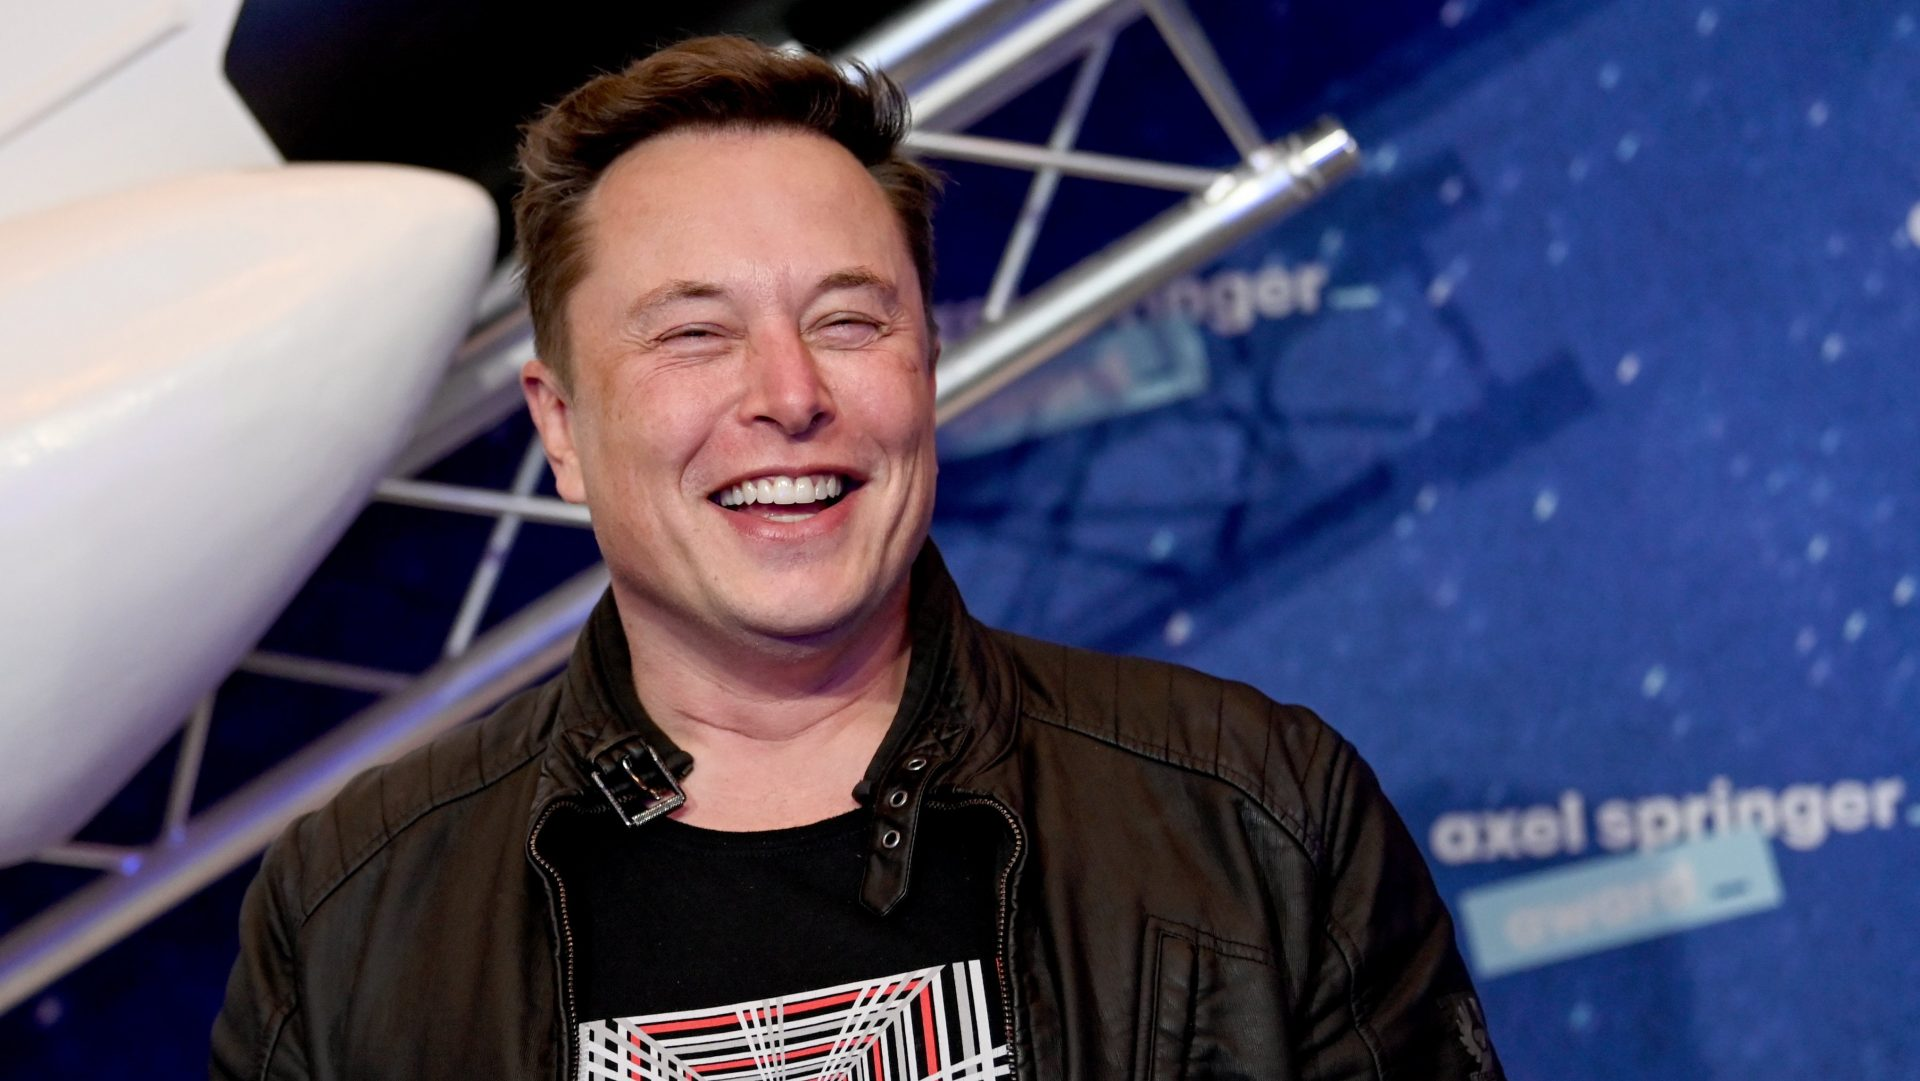 Mandatory Credit: Photo by BRITTA PEDERSEN/POOL/EPA-EFE/Shutterstock (11088639m)SpaceX owner and Tesla CEO Elon Musk arrives on the red carpet for the Axel Springer award, in Berlin, Germany, 01 December 2020.